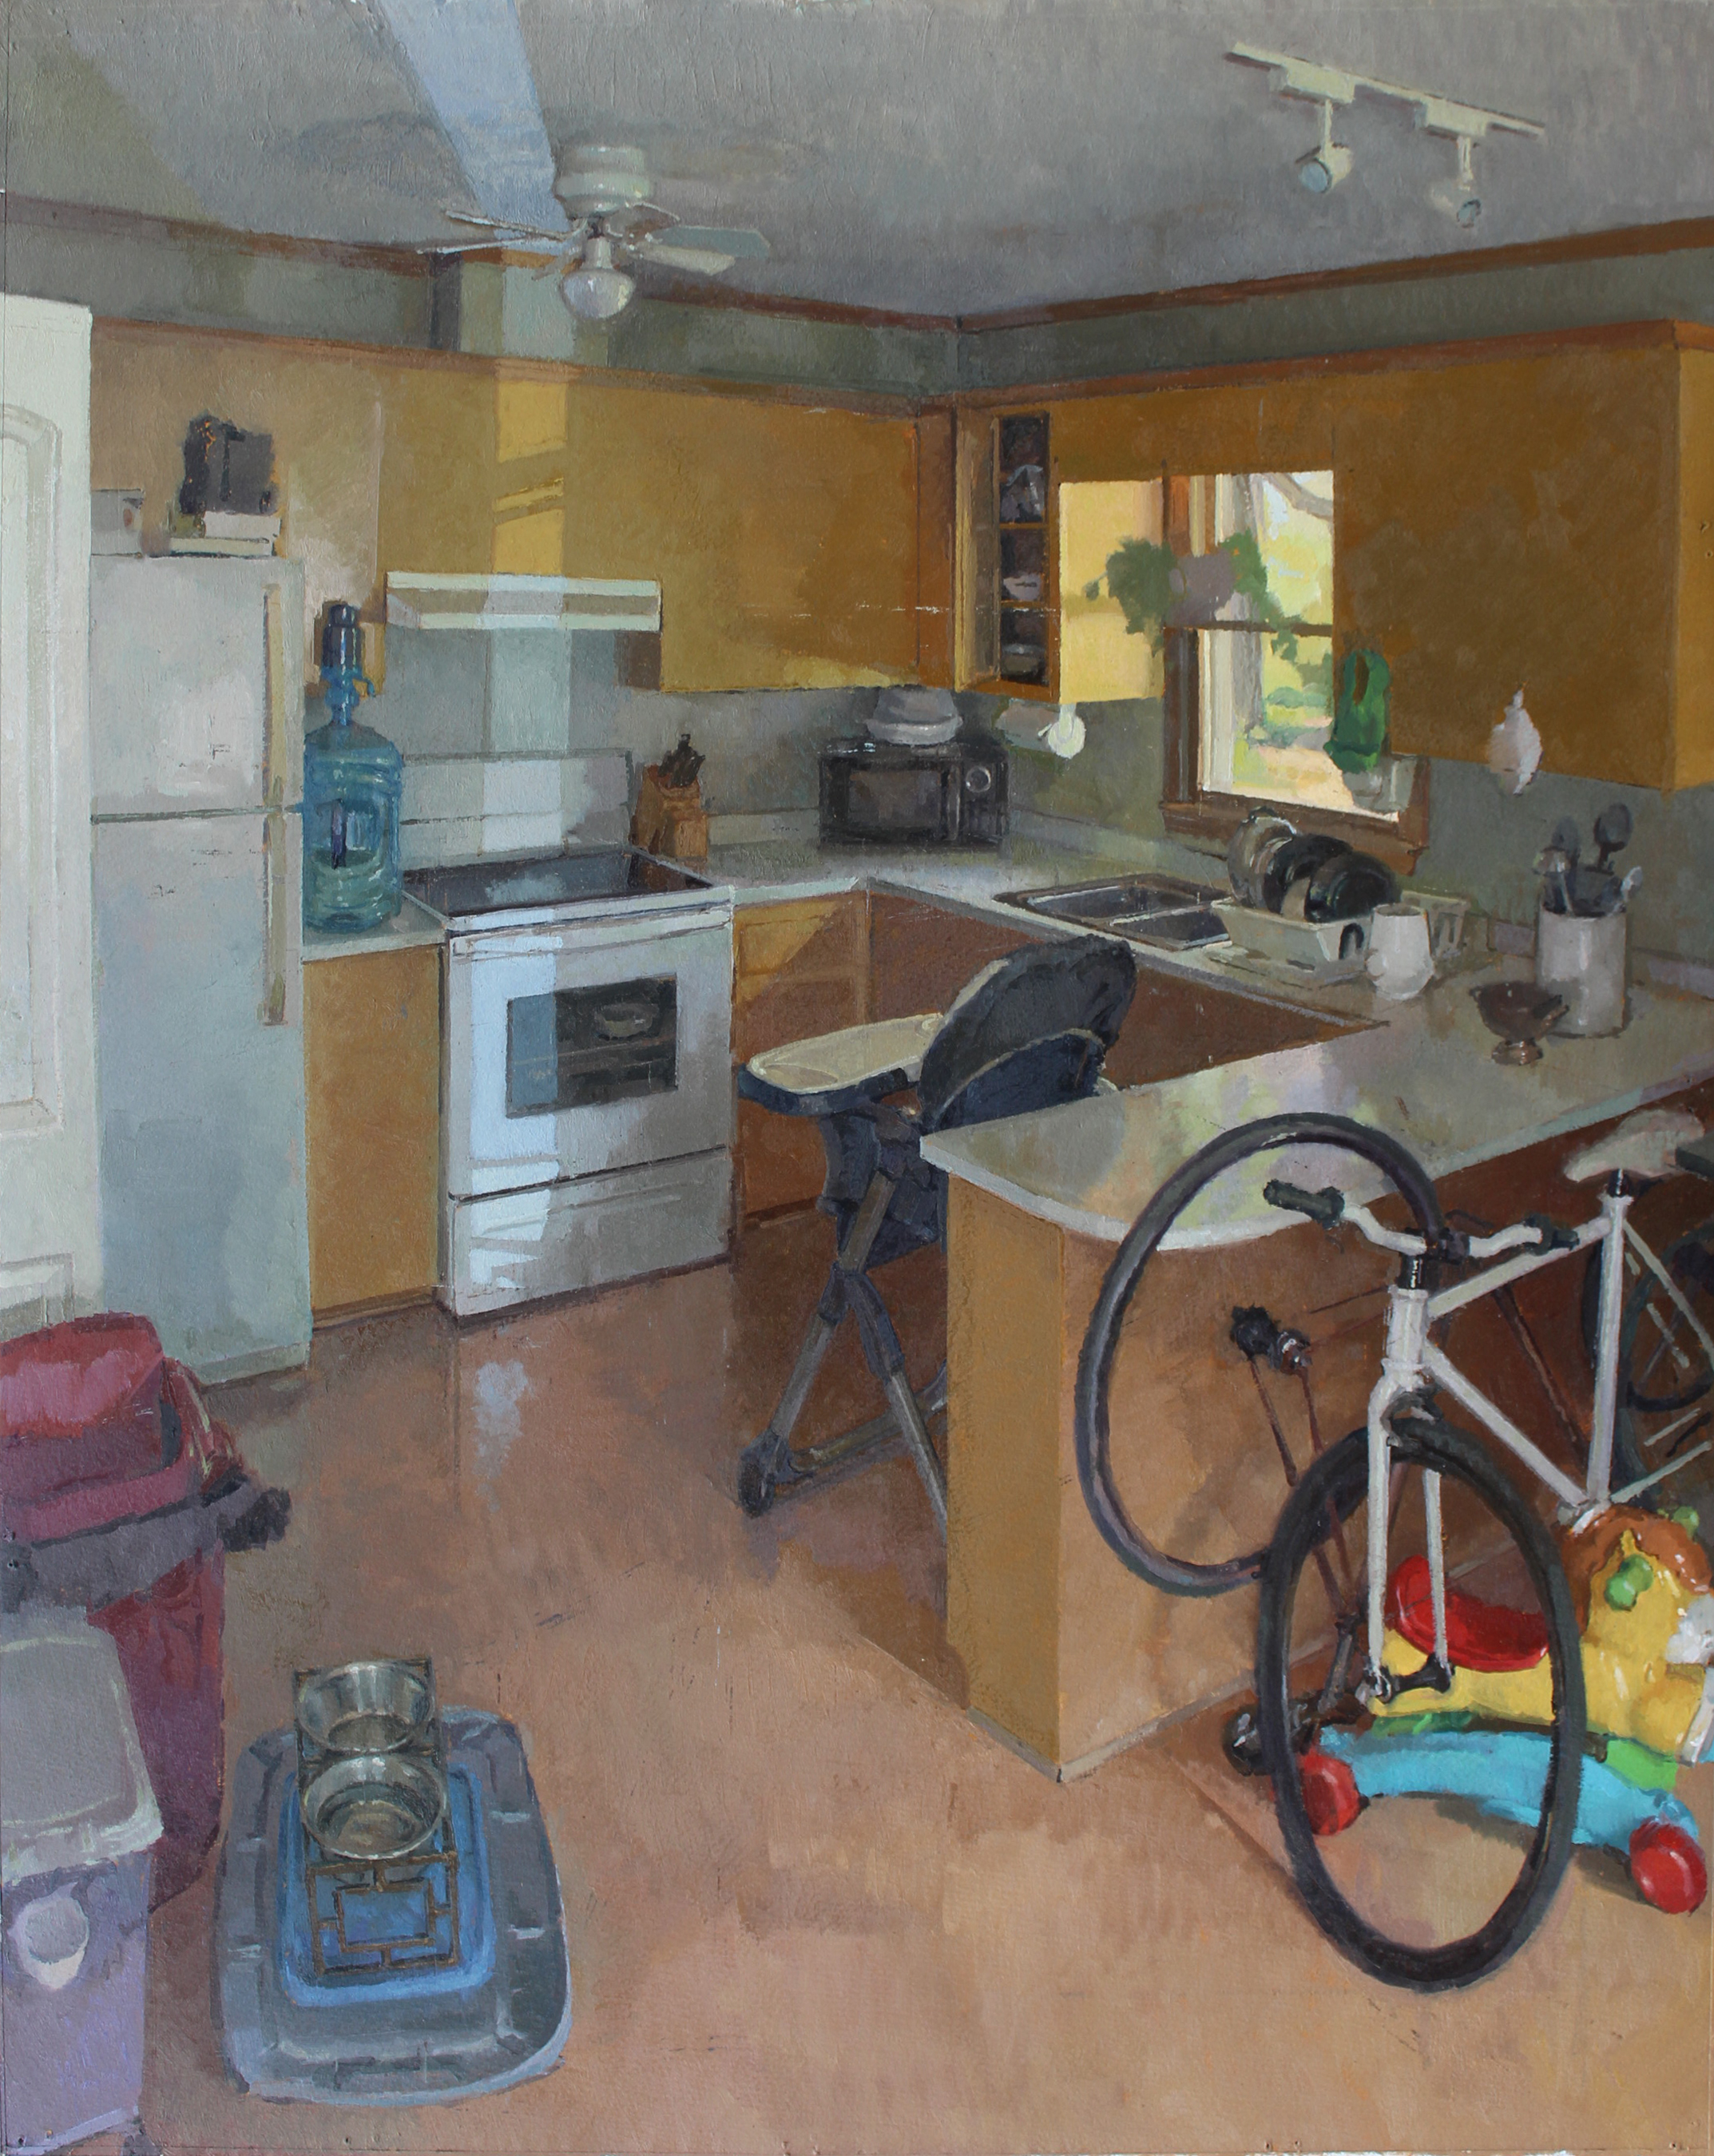 The Kitchen at Bozman Neavitt Road, Oil on paper, 29%22x23%22.JPG